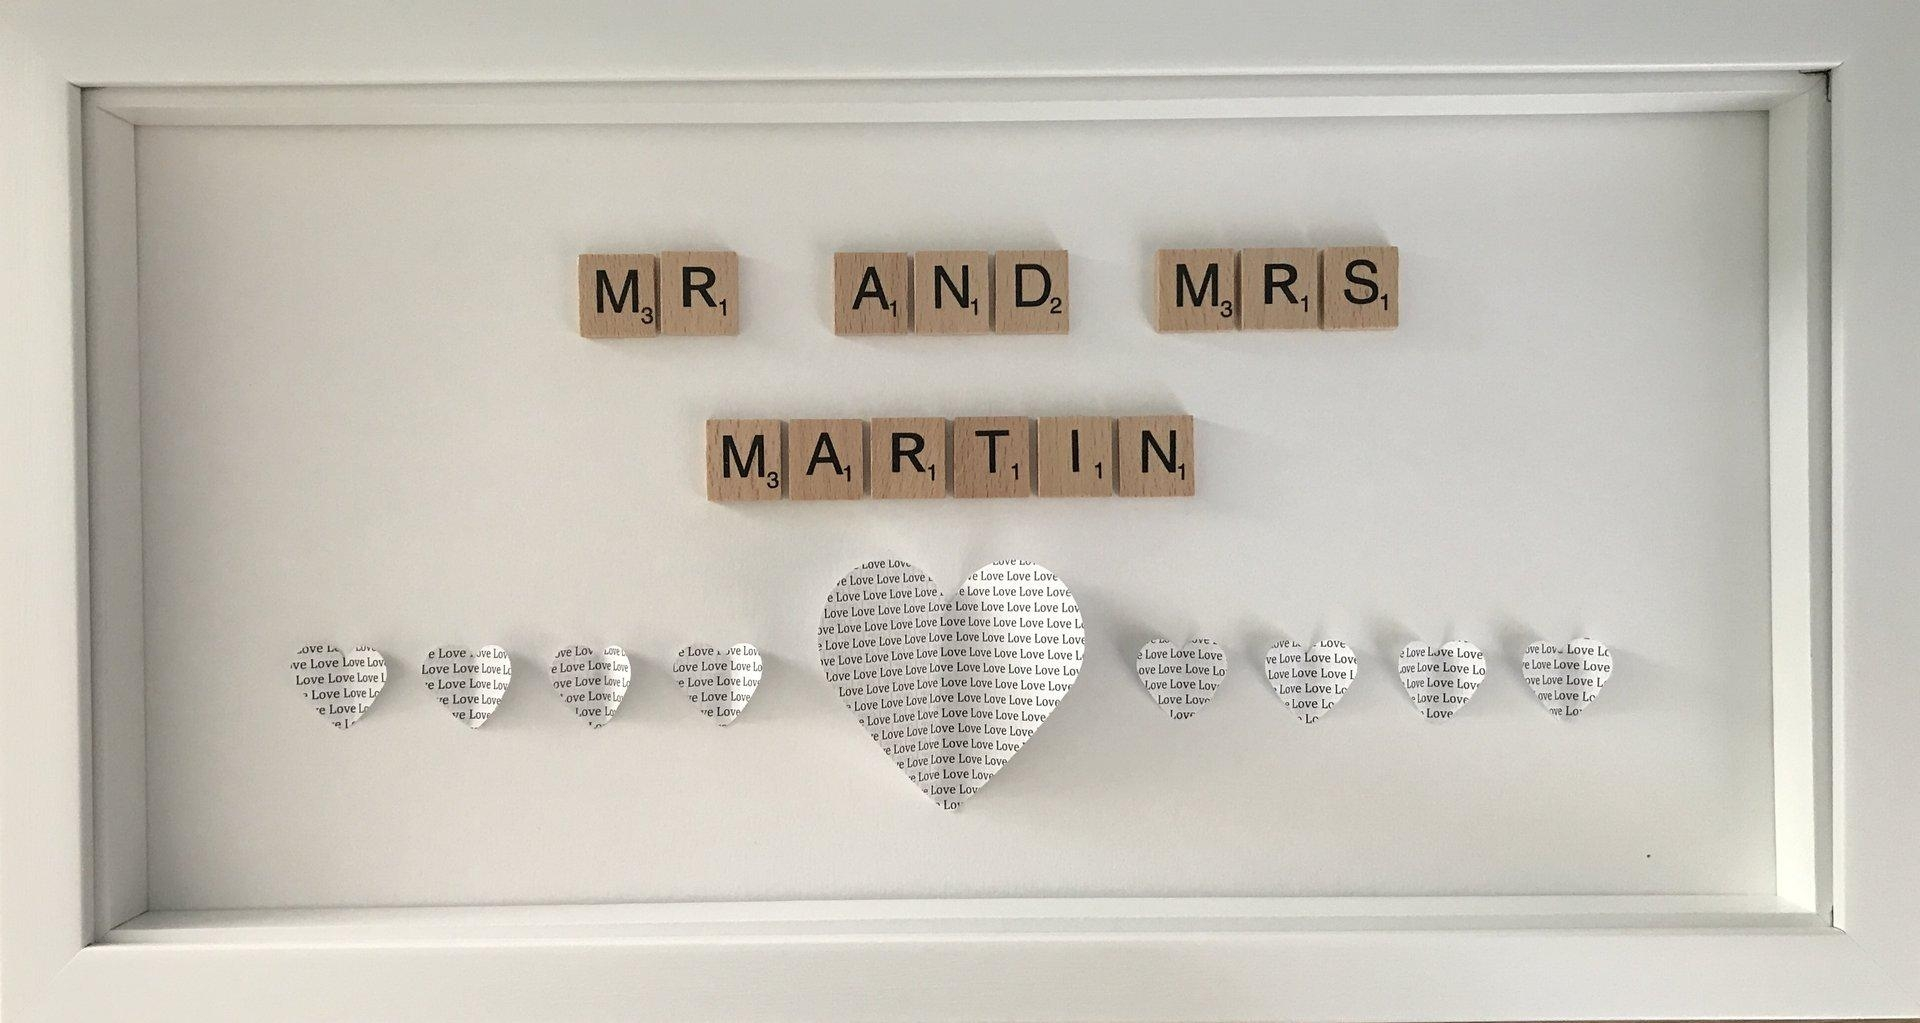 Mr And Mrs Scrabble Letter Wall Art – Nellie And Ferret Within Mr And Mrs Wall Art (View 16 of 20)